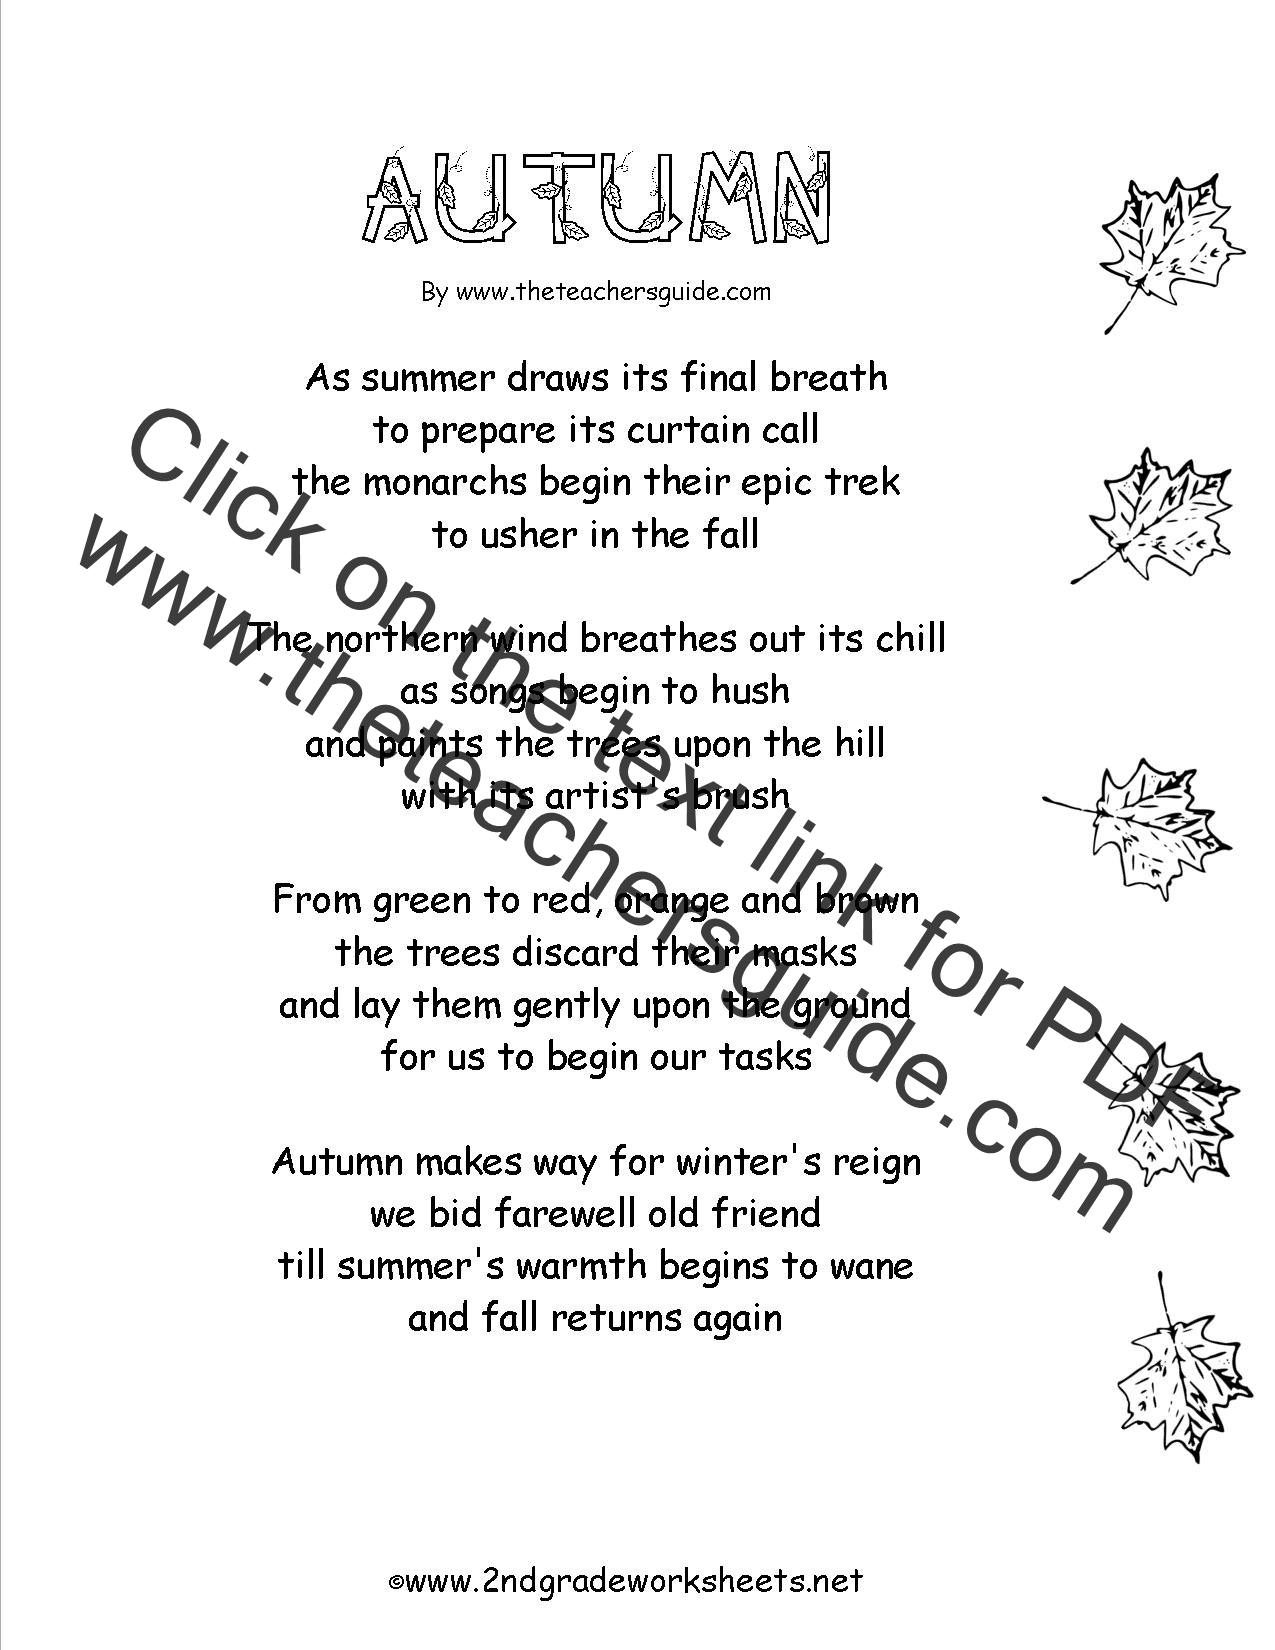 ... Book Report Template additionally Christmas Acrostic Poem Template. on